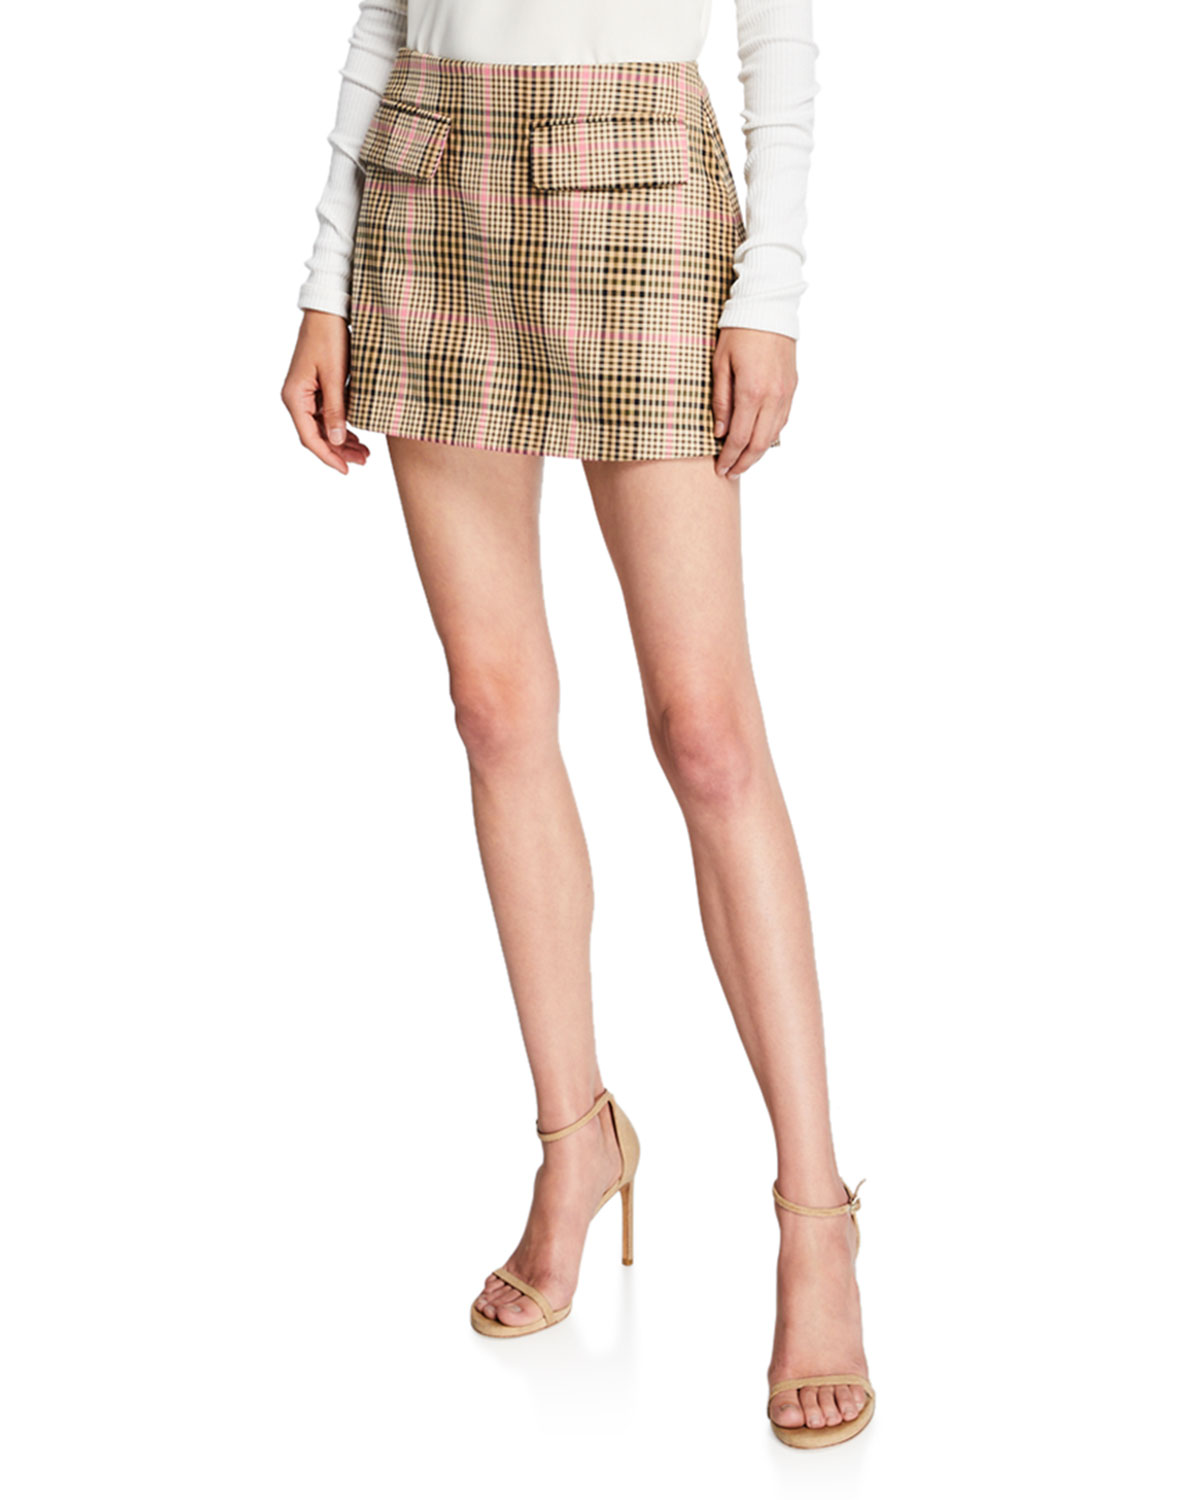 Short And Sweet Check Skirt by Maggie Marilyn